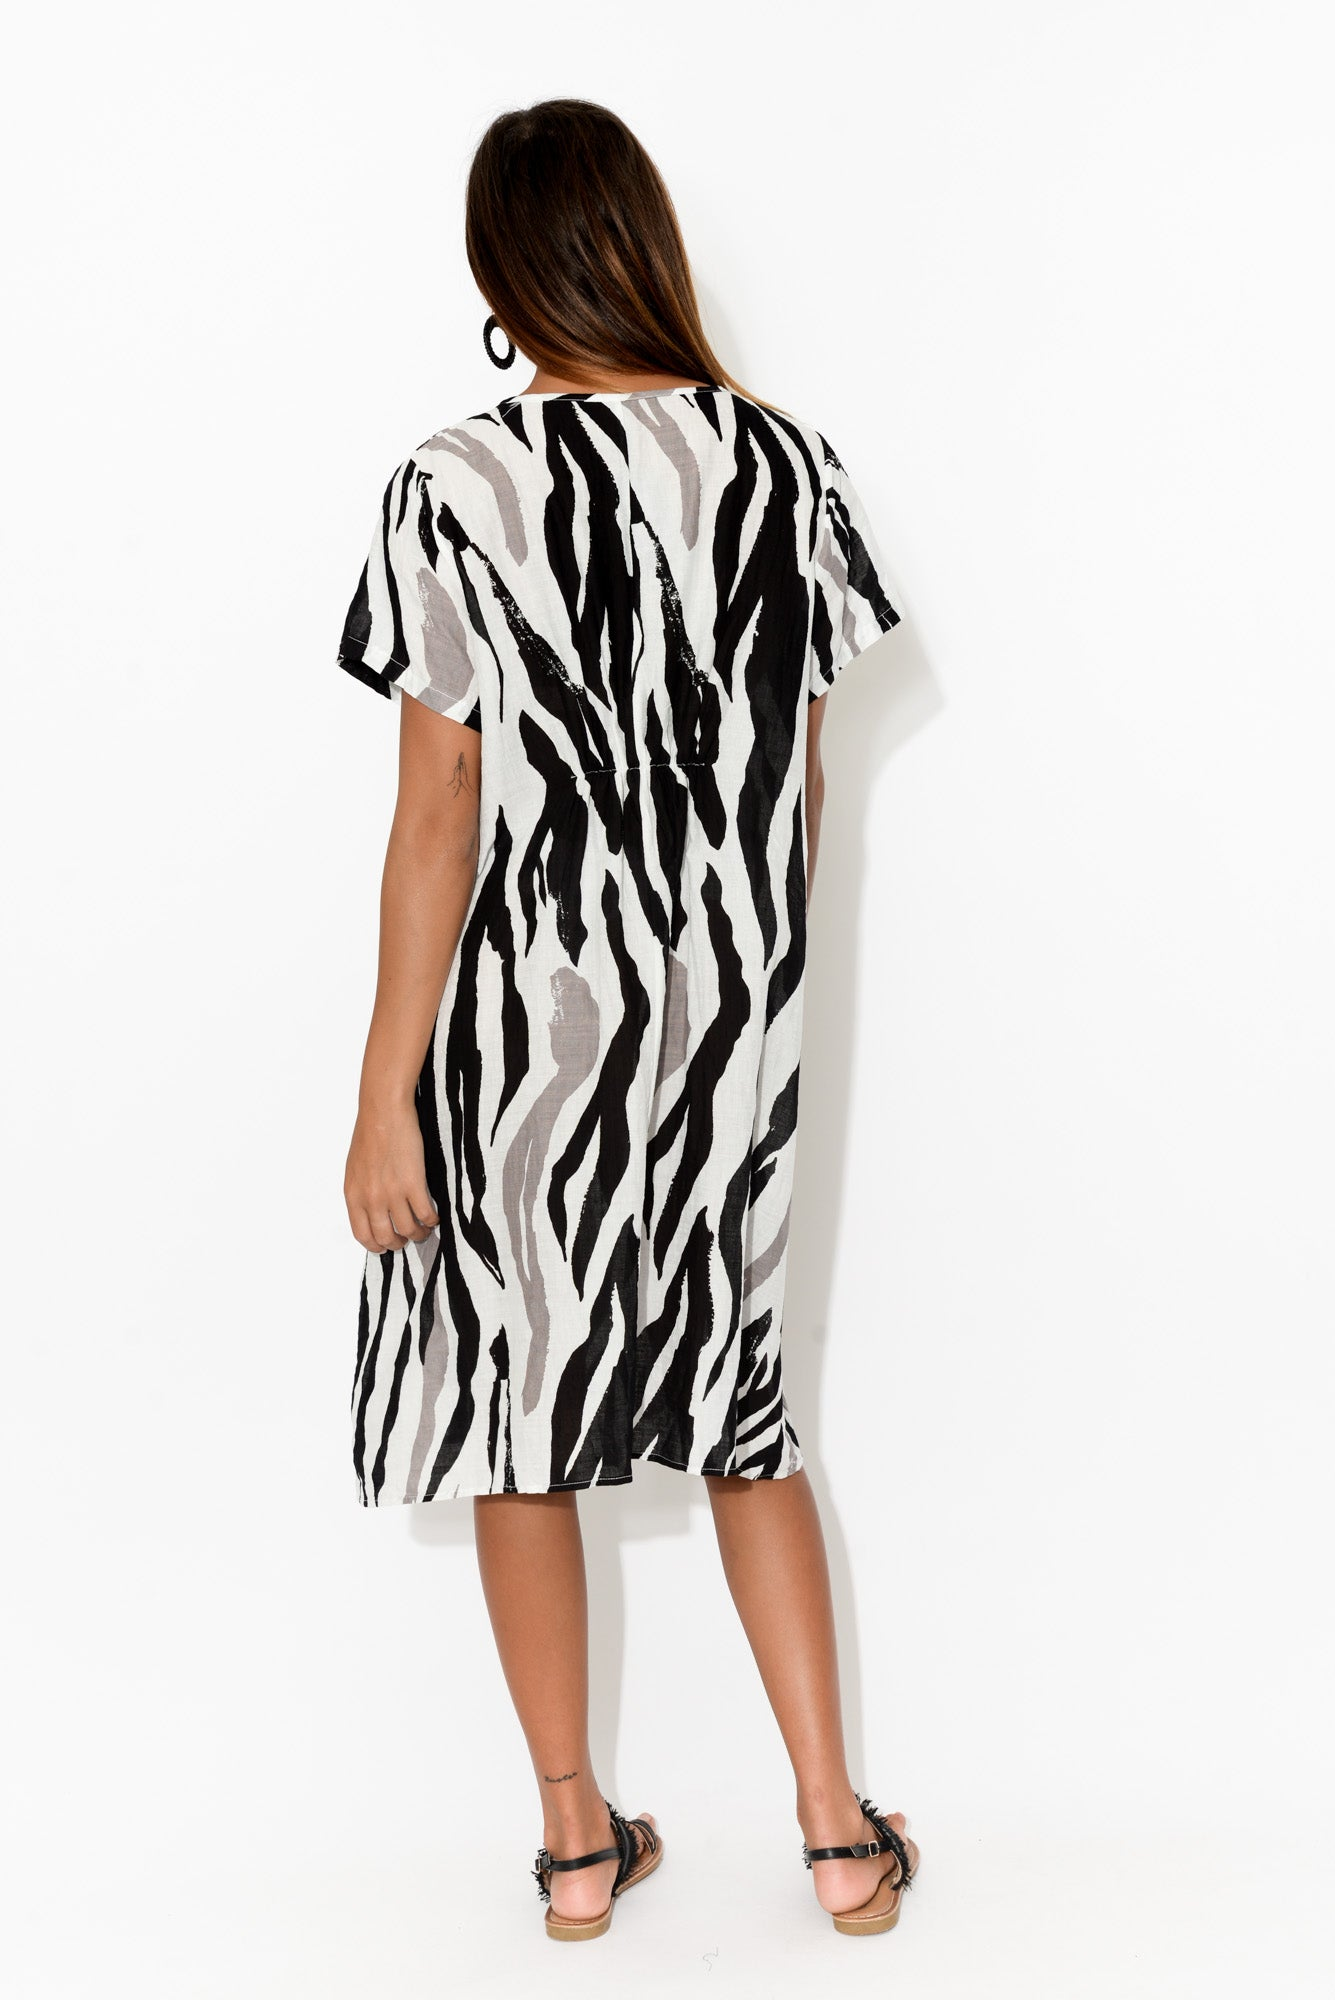 Tilly Black Zebra Dress